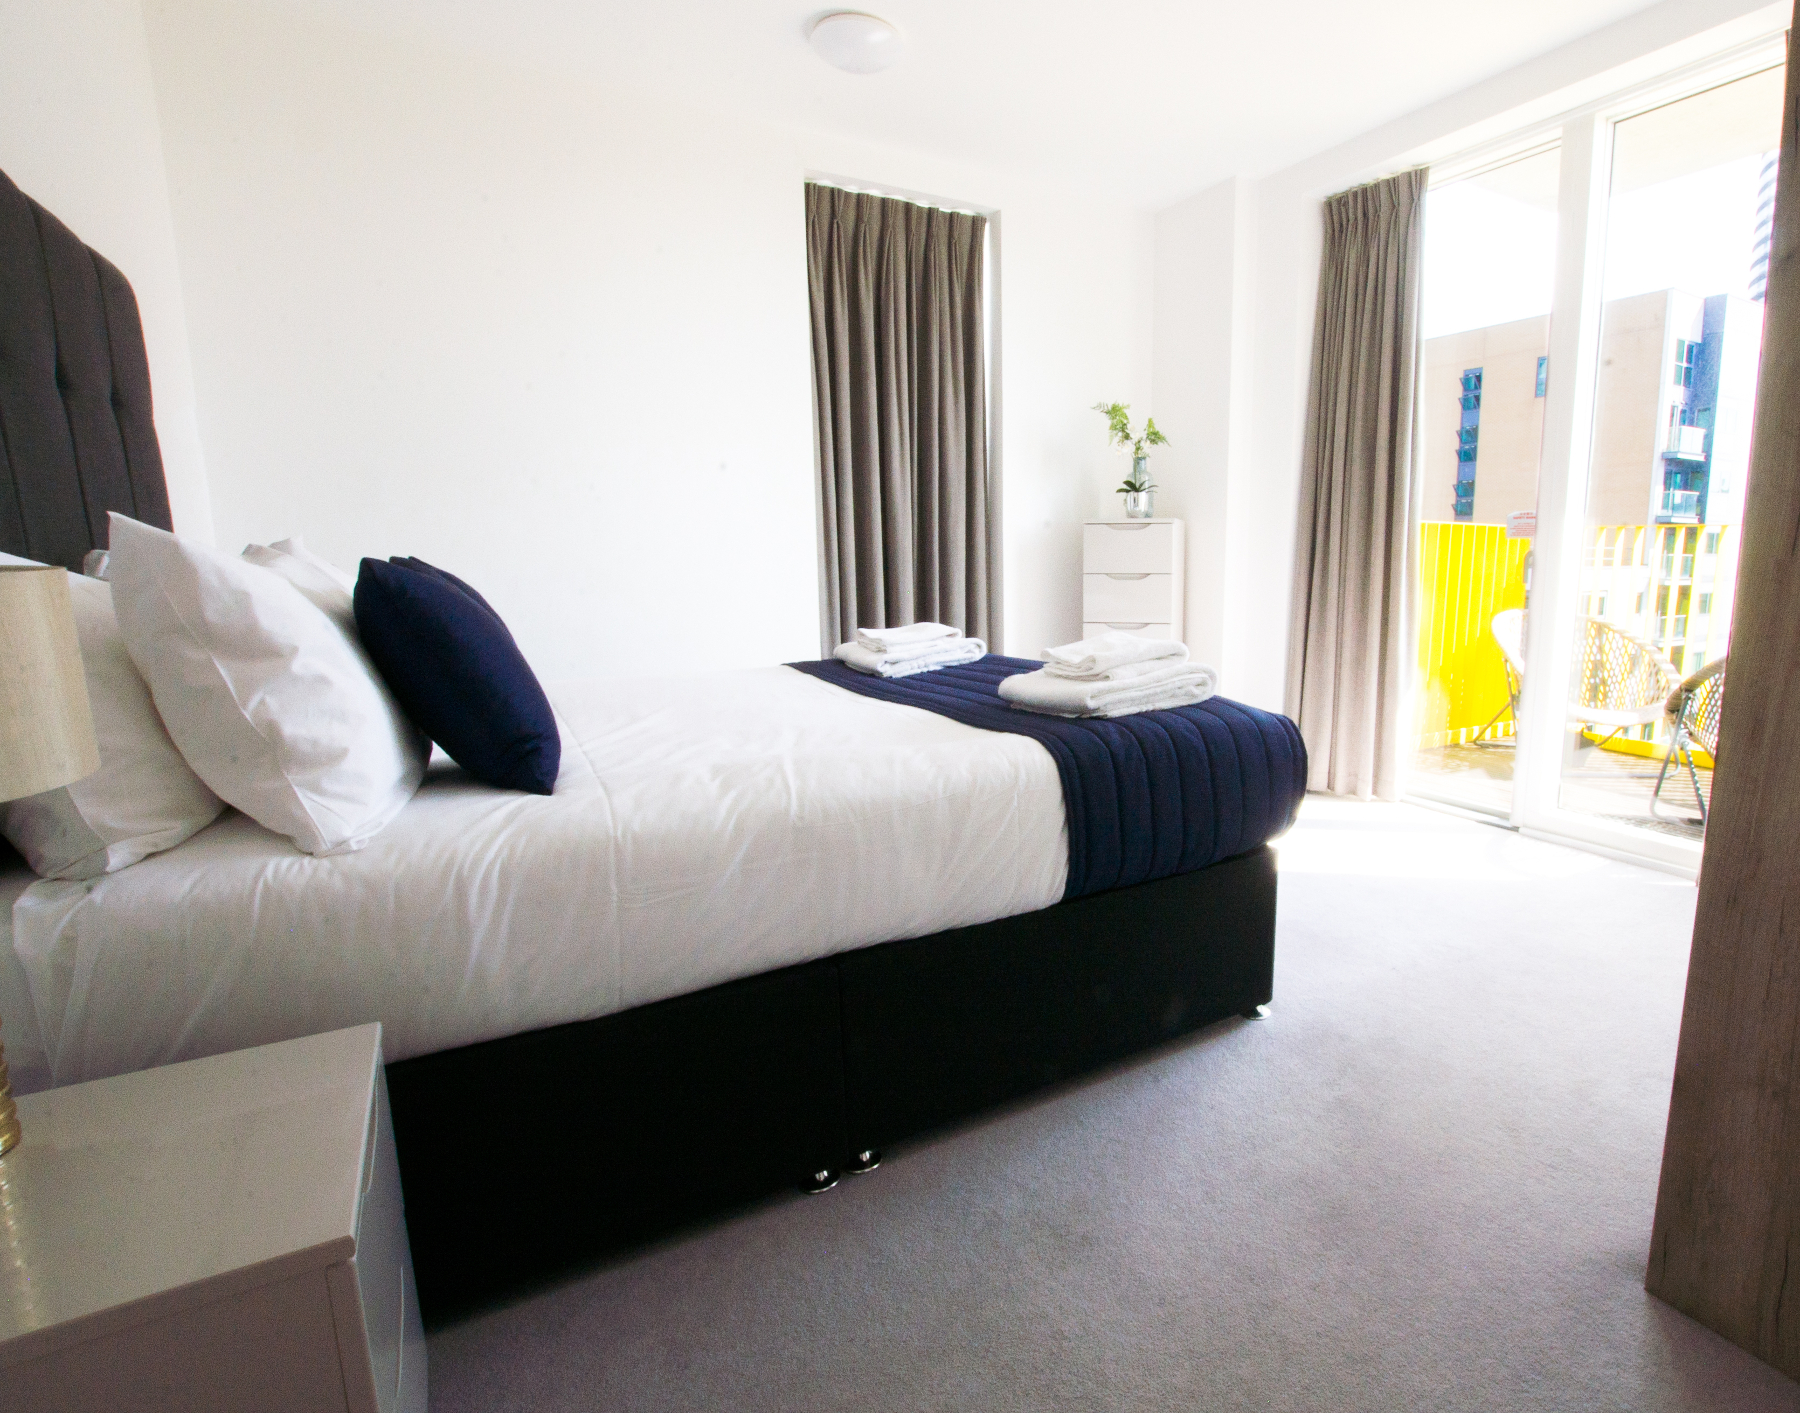 Bed at Millharbour Apartments, Isle of Dogs, London - Citybase Apartments